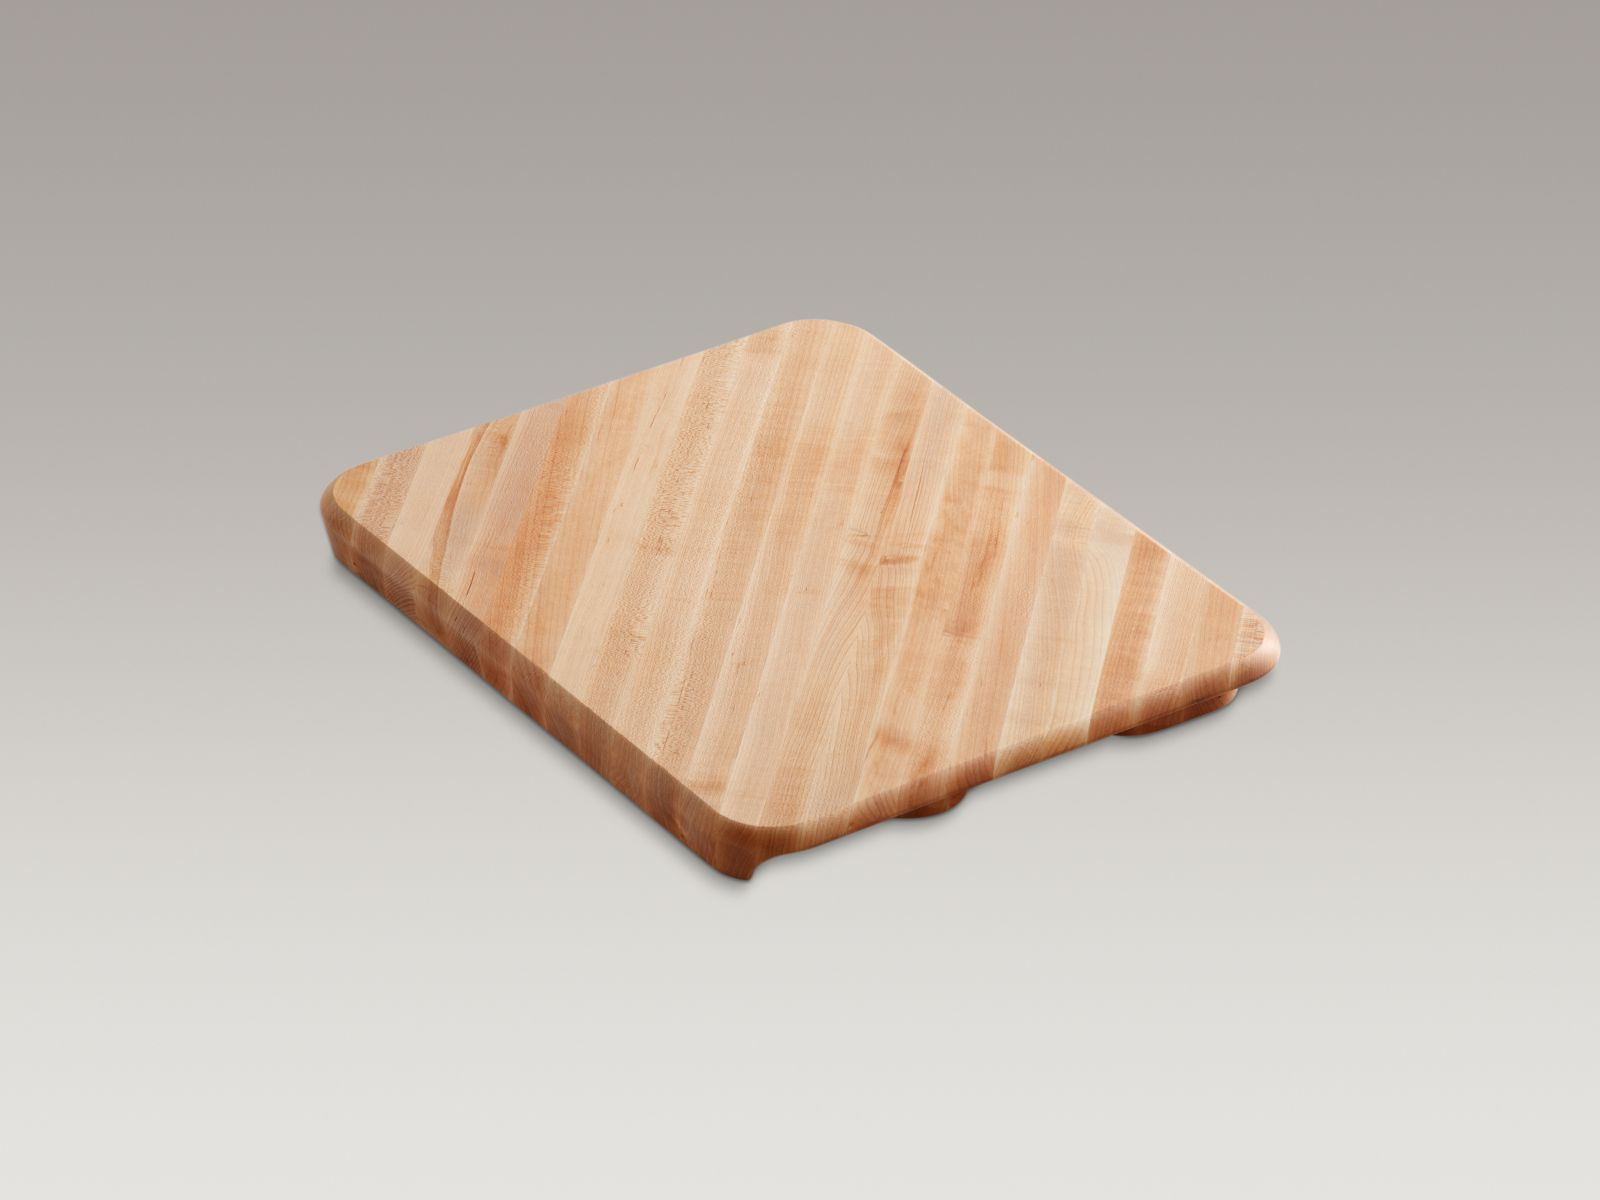 Kohler K-5984-NA Cutting Board Hardwood